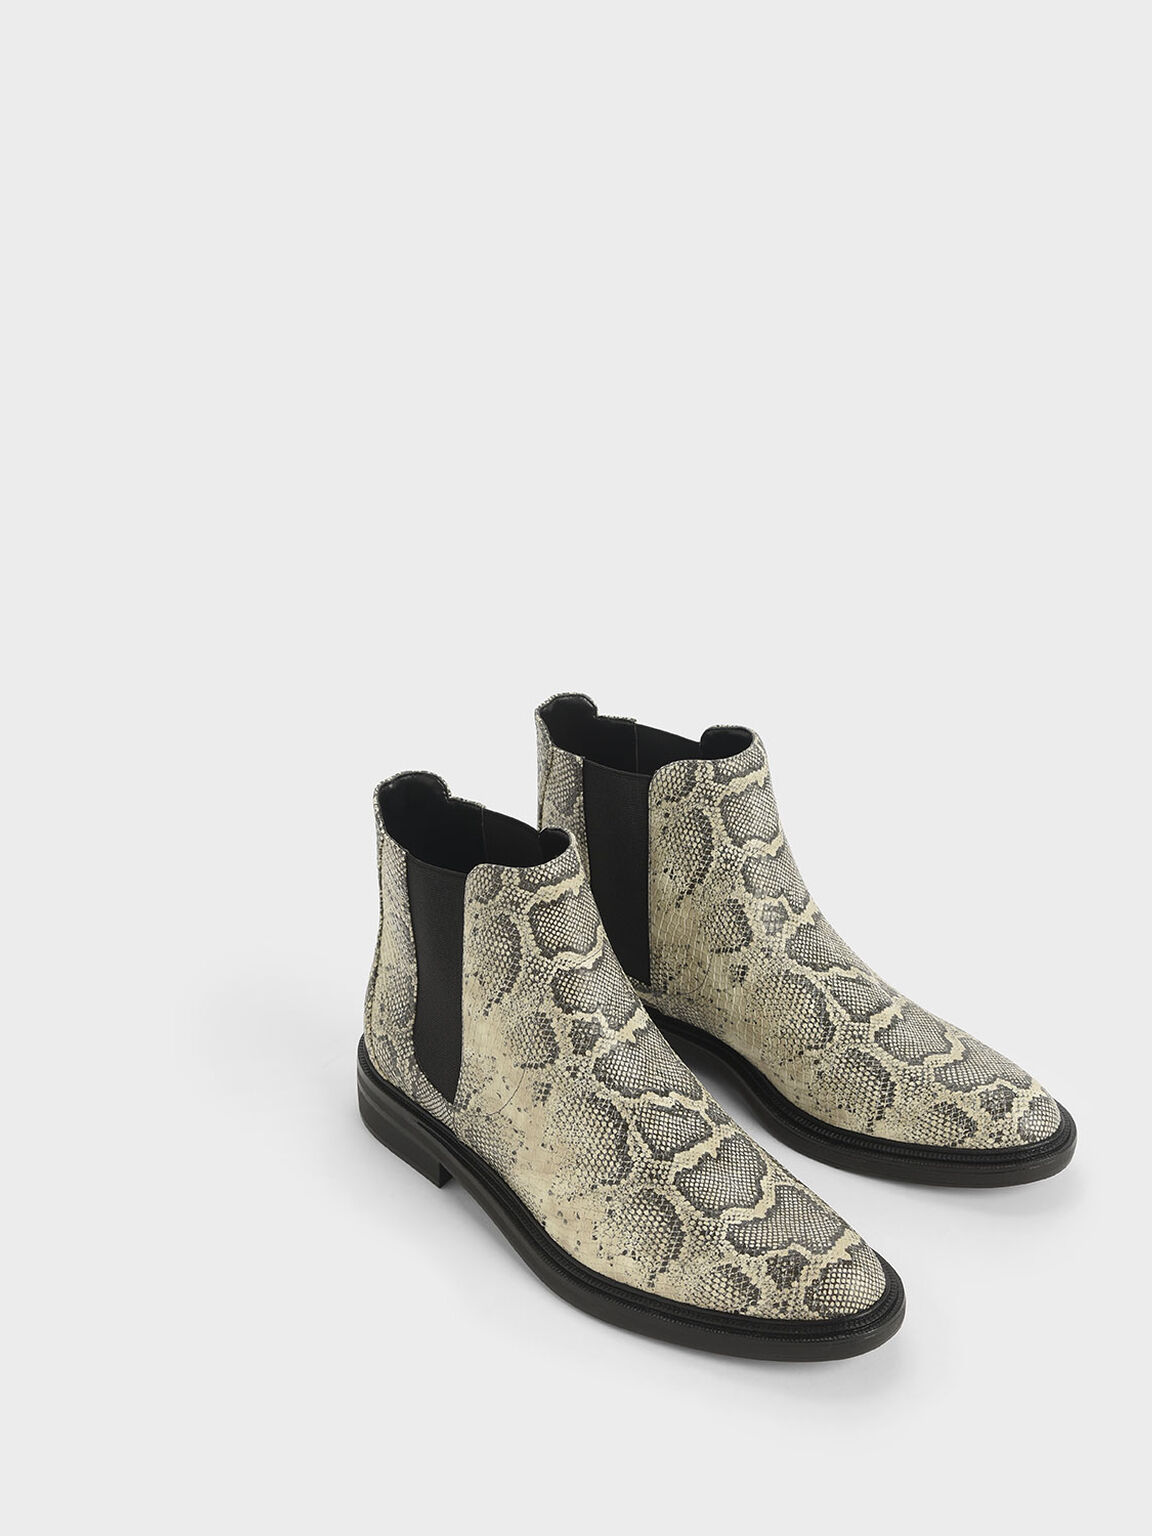 Snake Print Chelsea Boots, Grey, hi-res